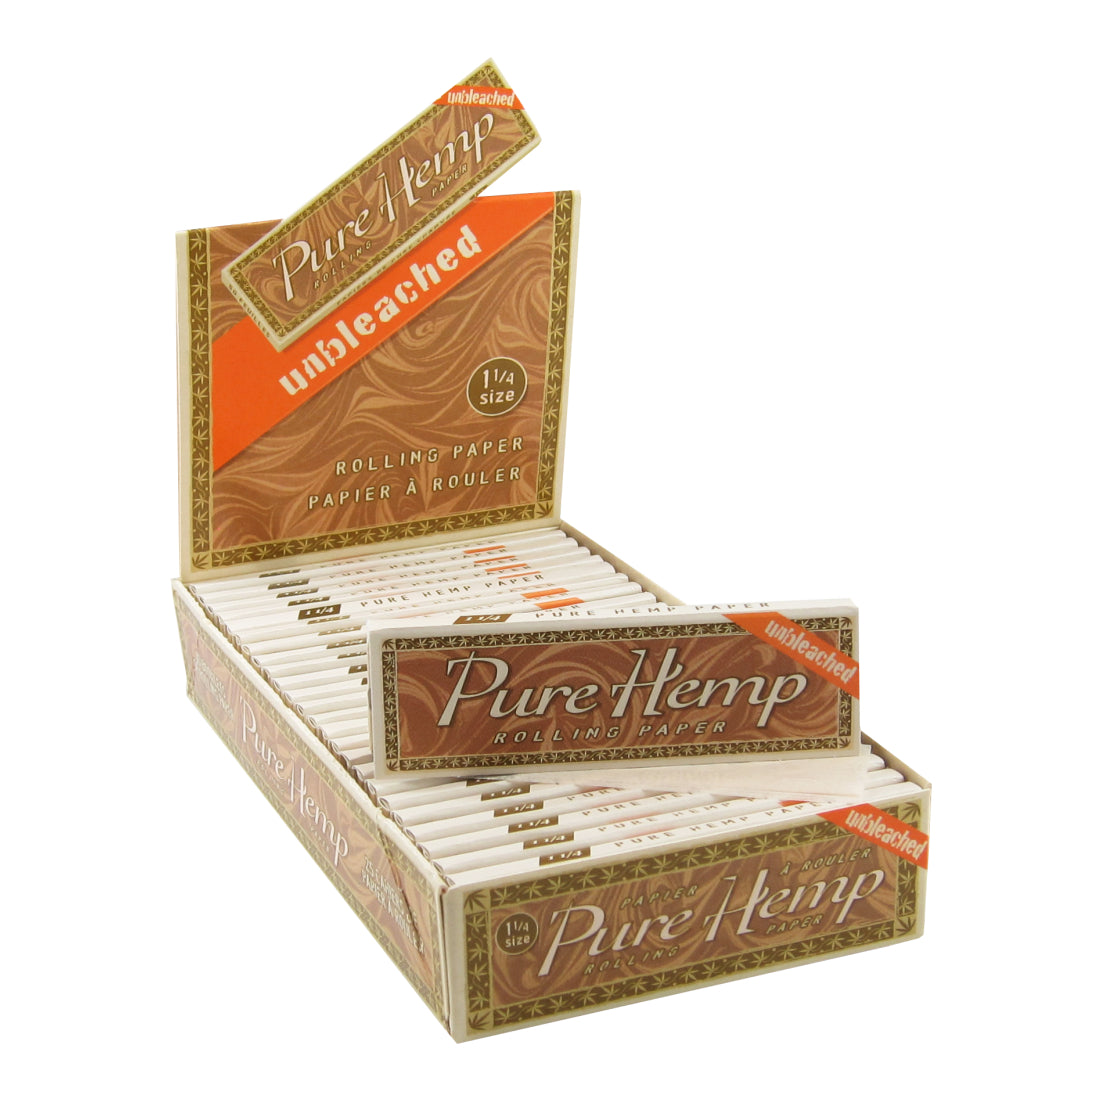 Pure Hemp Unbleached 1 1/4 Size Rolling Papers